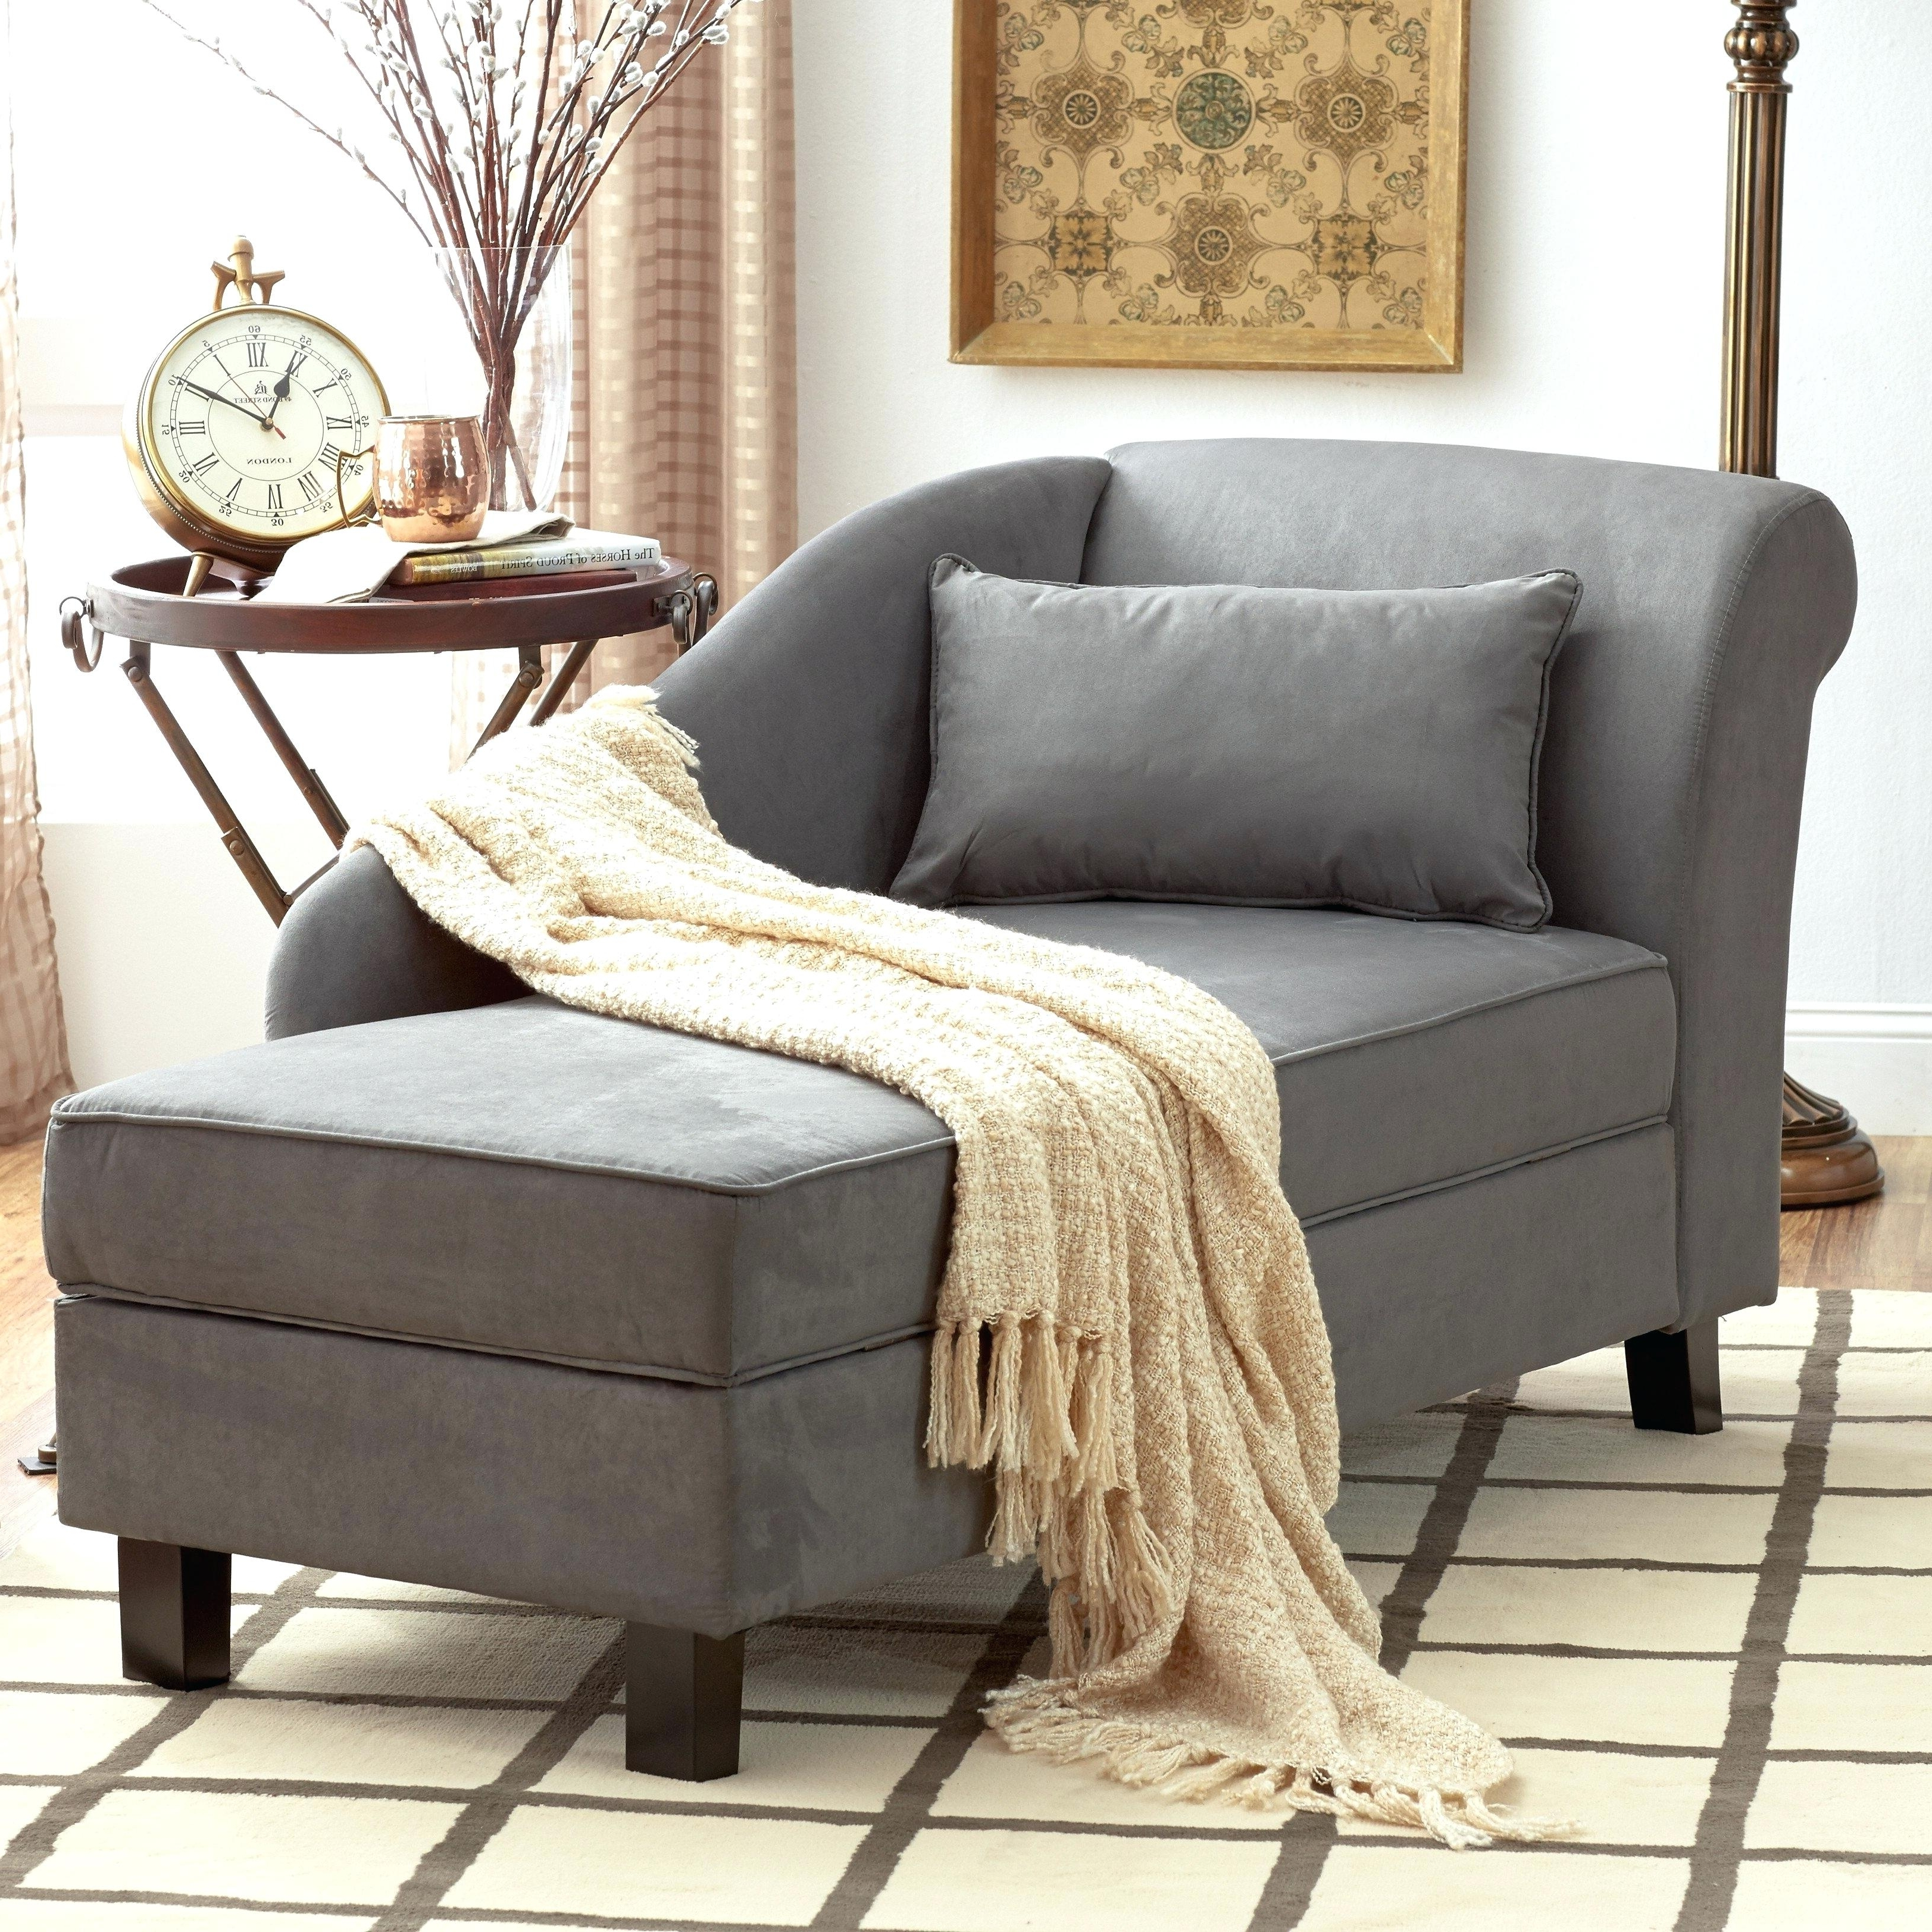 Chaise Lounge With Arms S Chair Slipcover No Indoor – Province De Pertaining To Fashionable Chaise Lounge Chairs With Arms Slipcover (View 10 of 15)